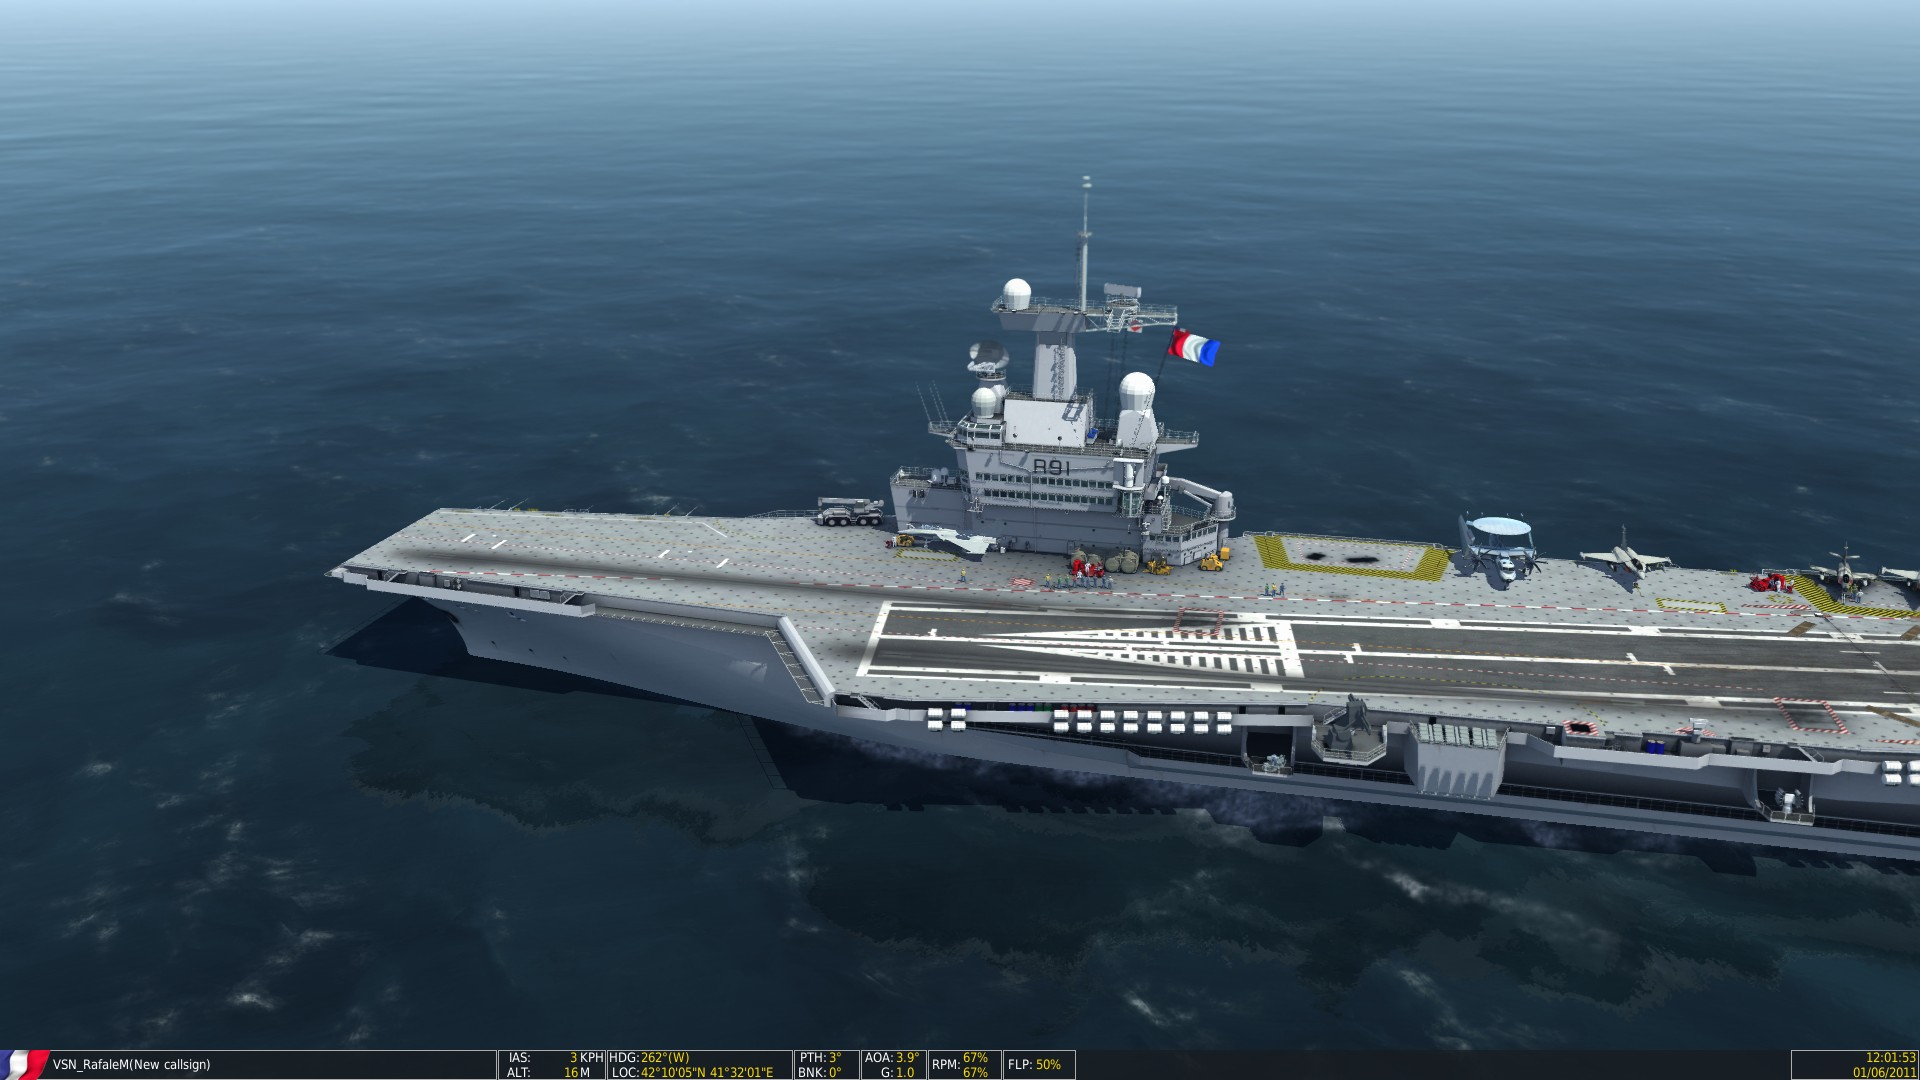 rc helicopter simulator online with Aircraft Carrier Landing Simulator on 2604336 Chinook Helicopter 3d Model Download besides Aircraft Carrier Landing Simulator also Sea plane flight simulator 3d in addition Phoenix Rc Airplanes Ebay further Amazon item 5 B00DX8KTZ2   Speed Boat Zombies.